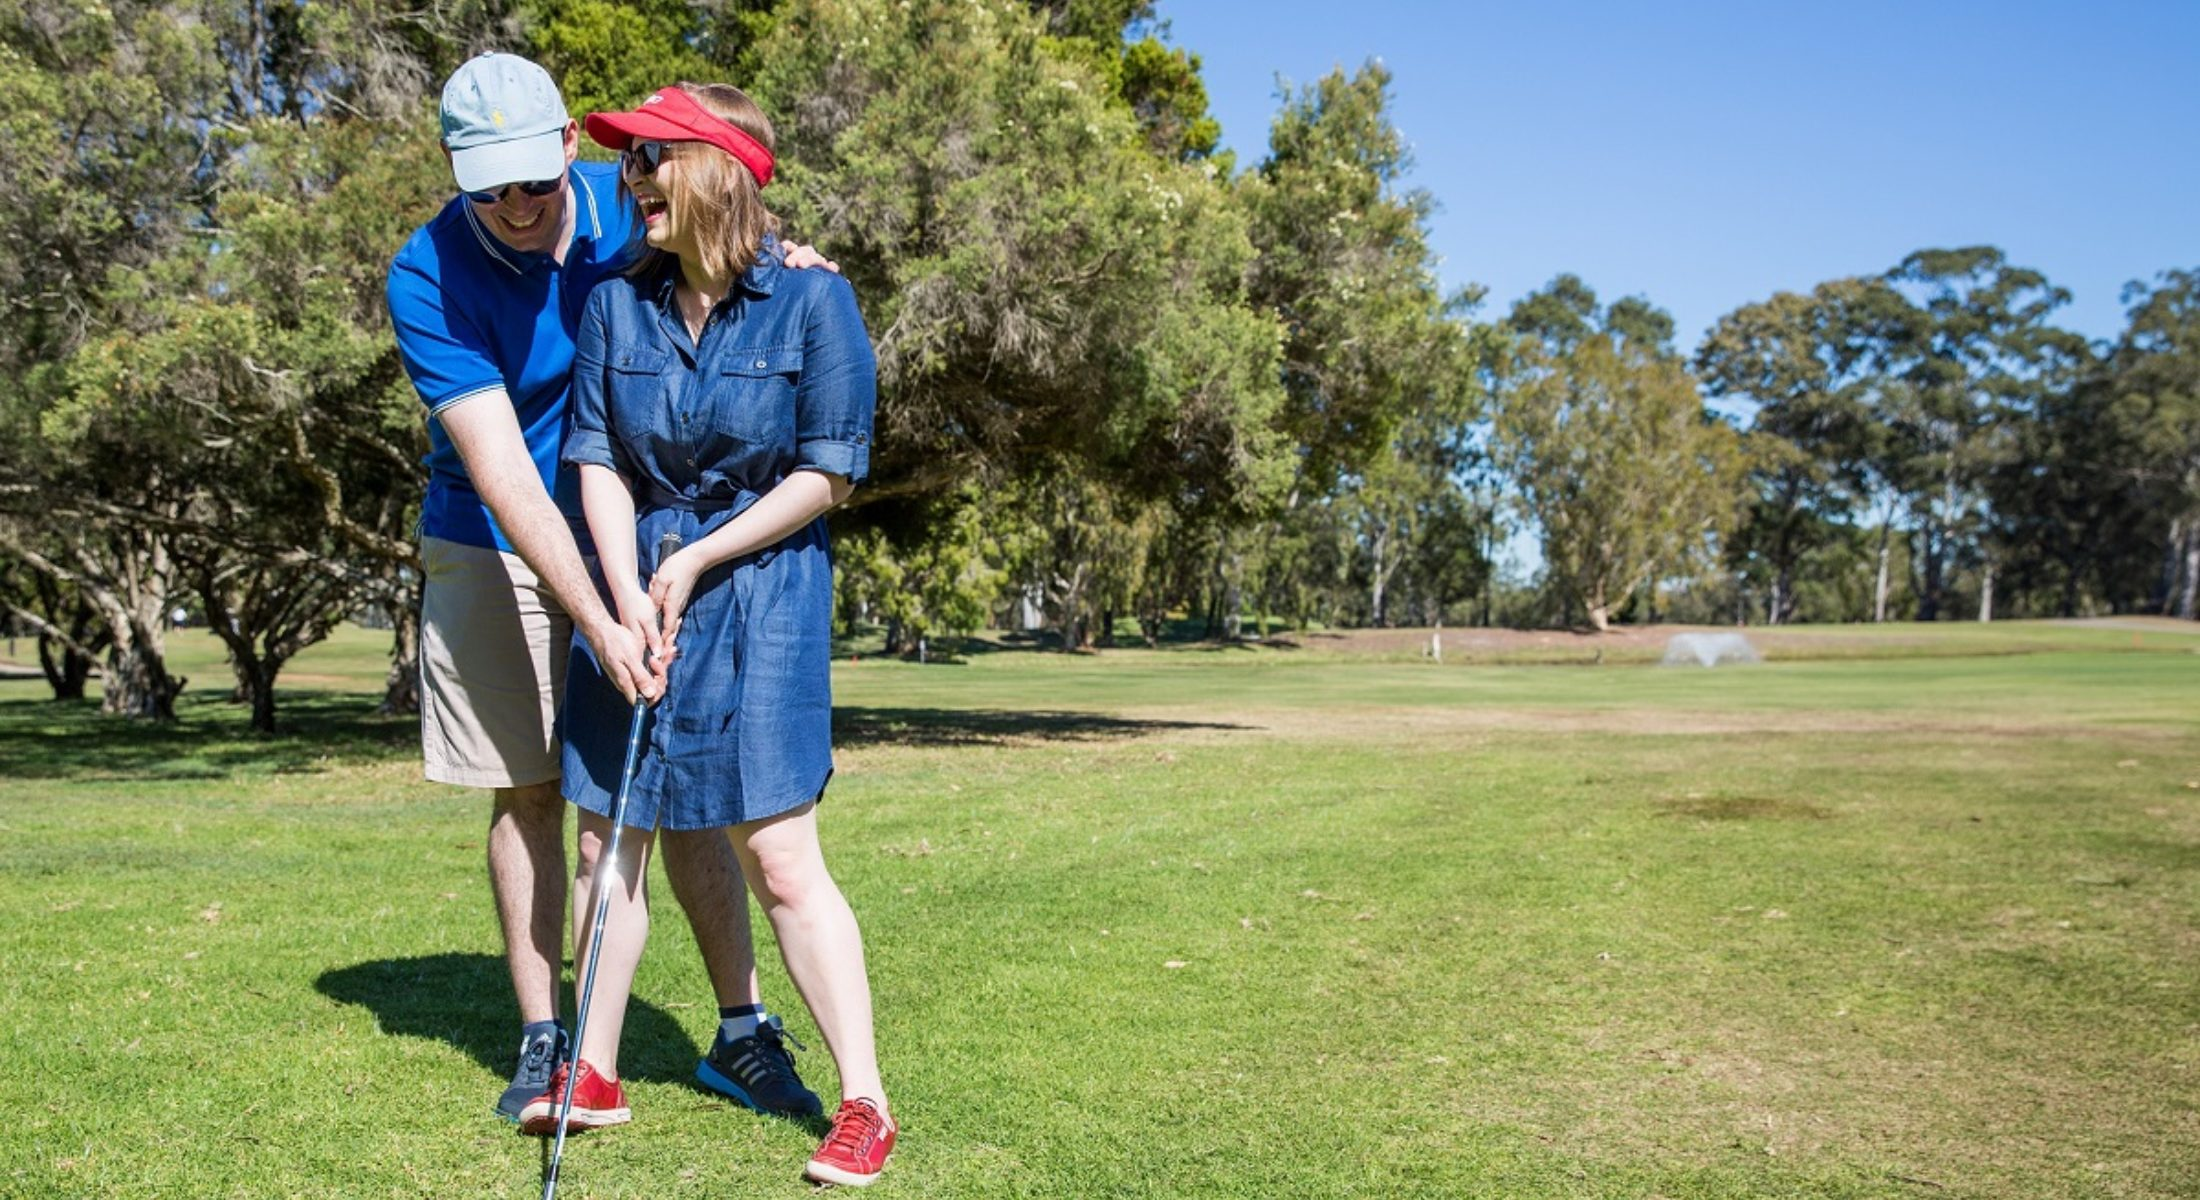 Pacific Harbour Golf Club Couple Activities Near Brisbane Moreton Bay Region